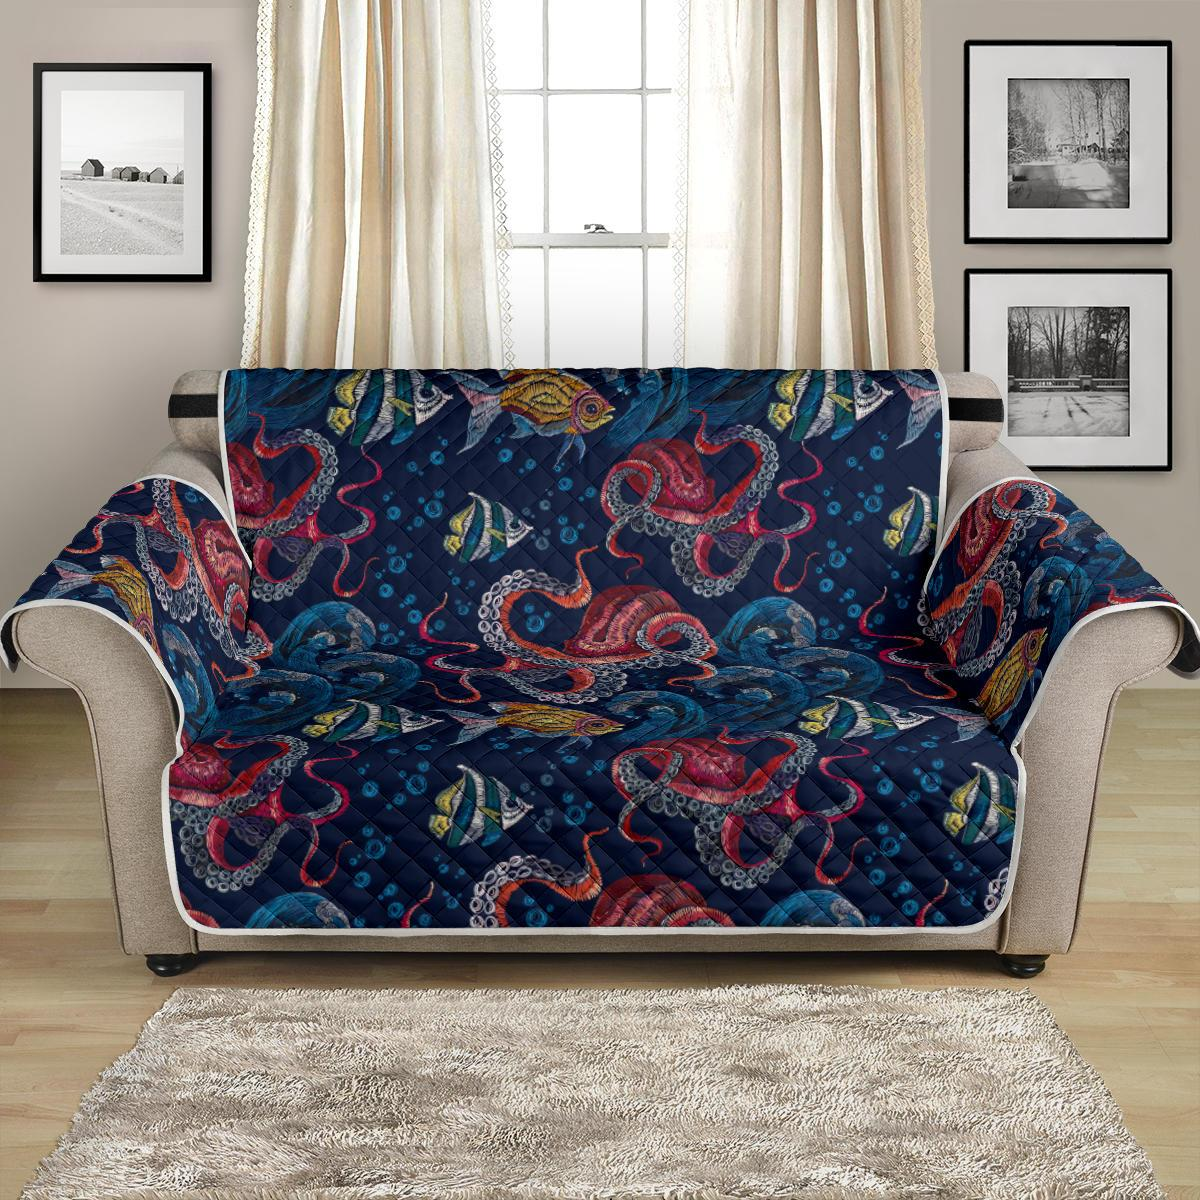 Octopus Deep Sea Print Themed Loveseat Couch Cover Protector